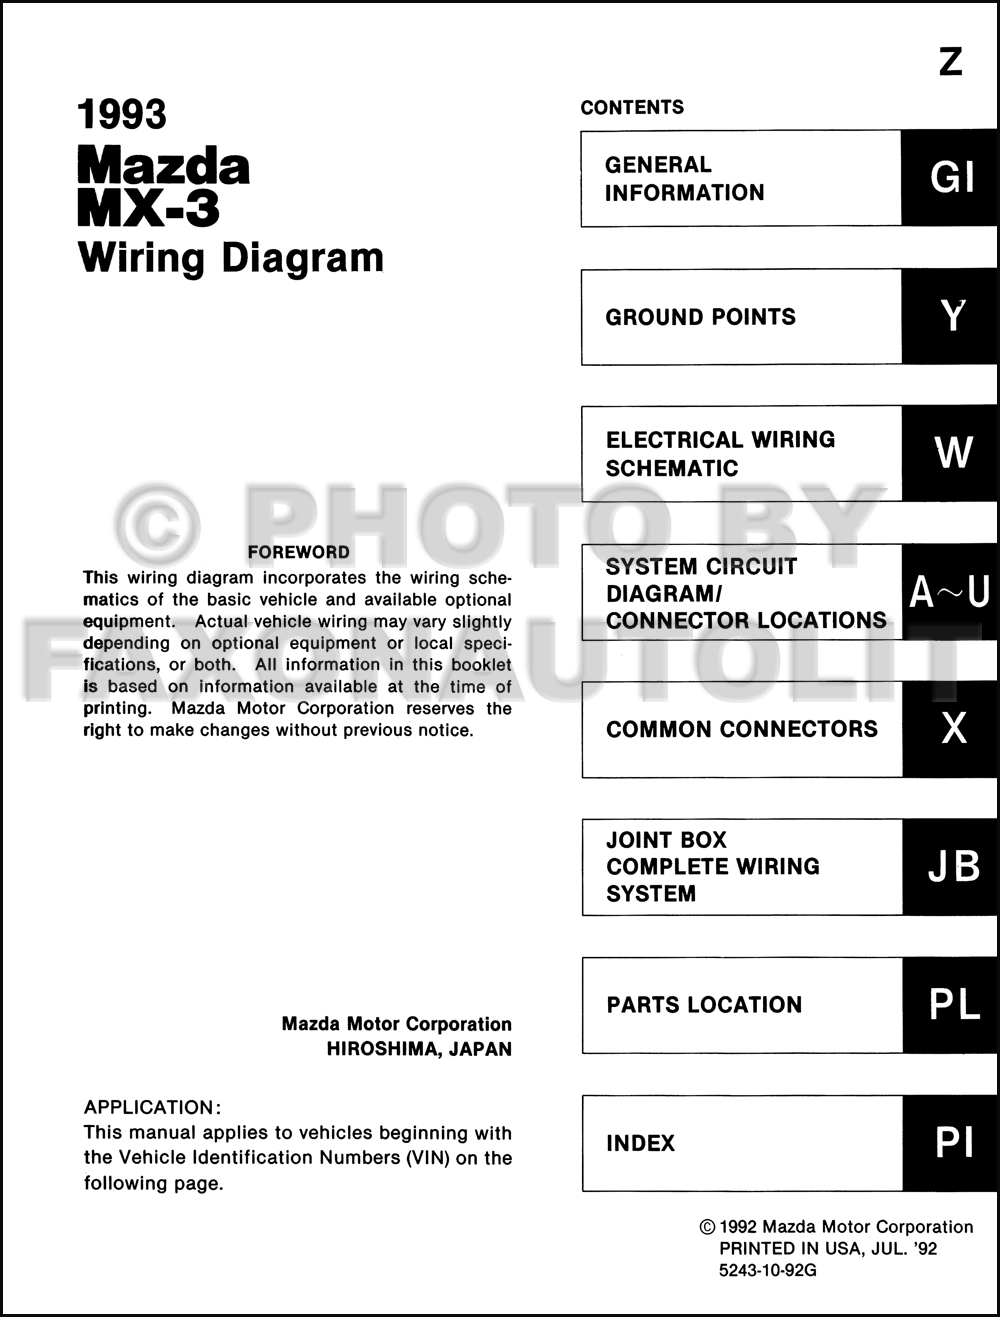 93 Mazda Mx3 Wiring Diagram Detailed Schematic Diagrams Rx3 1993 Mx 3 Manual Original B2300